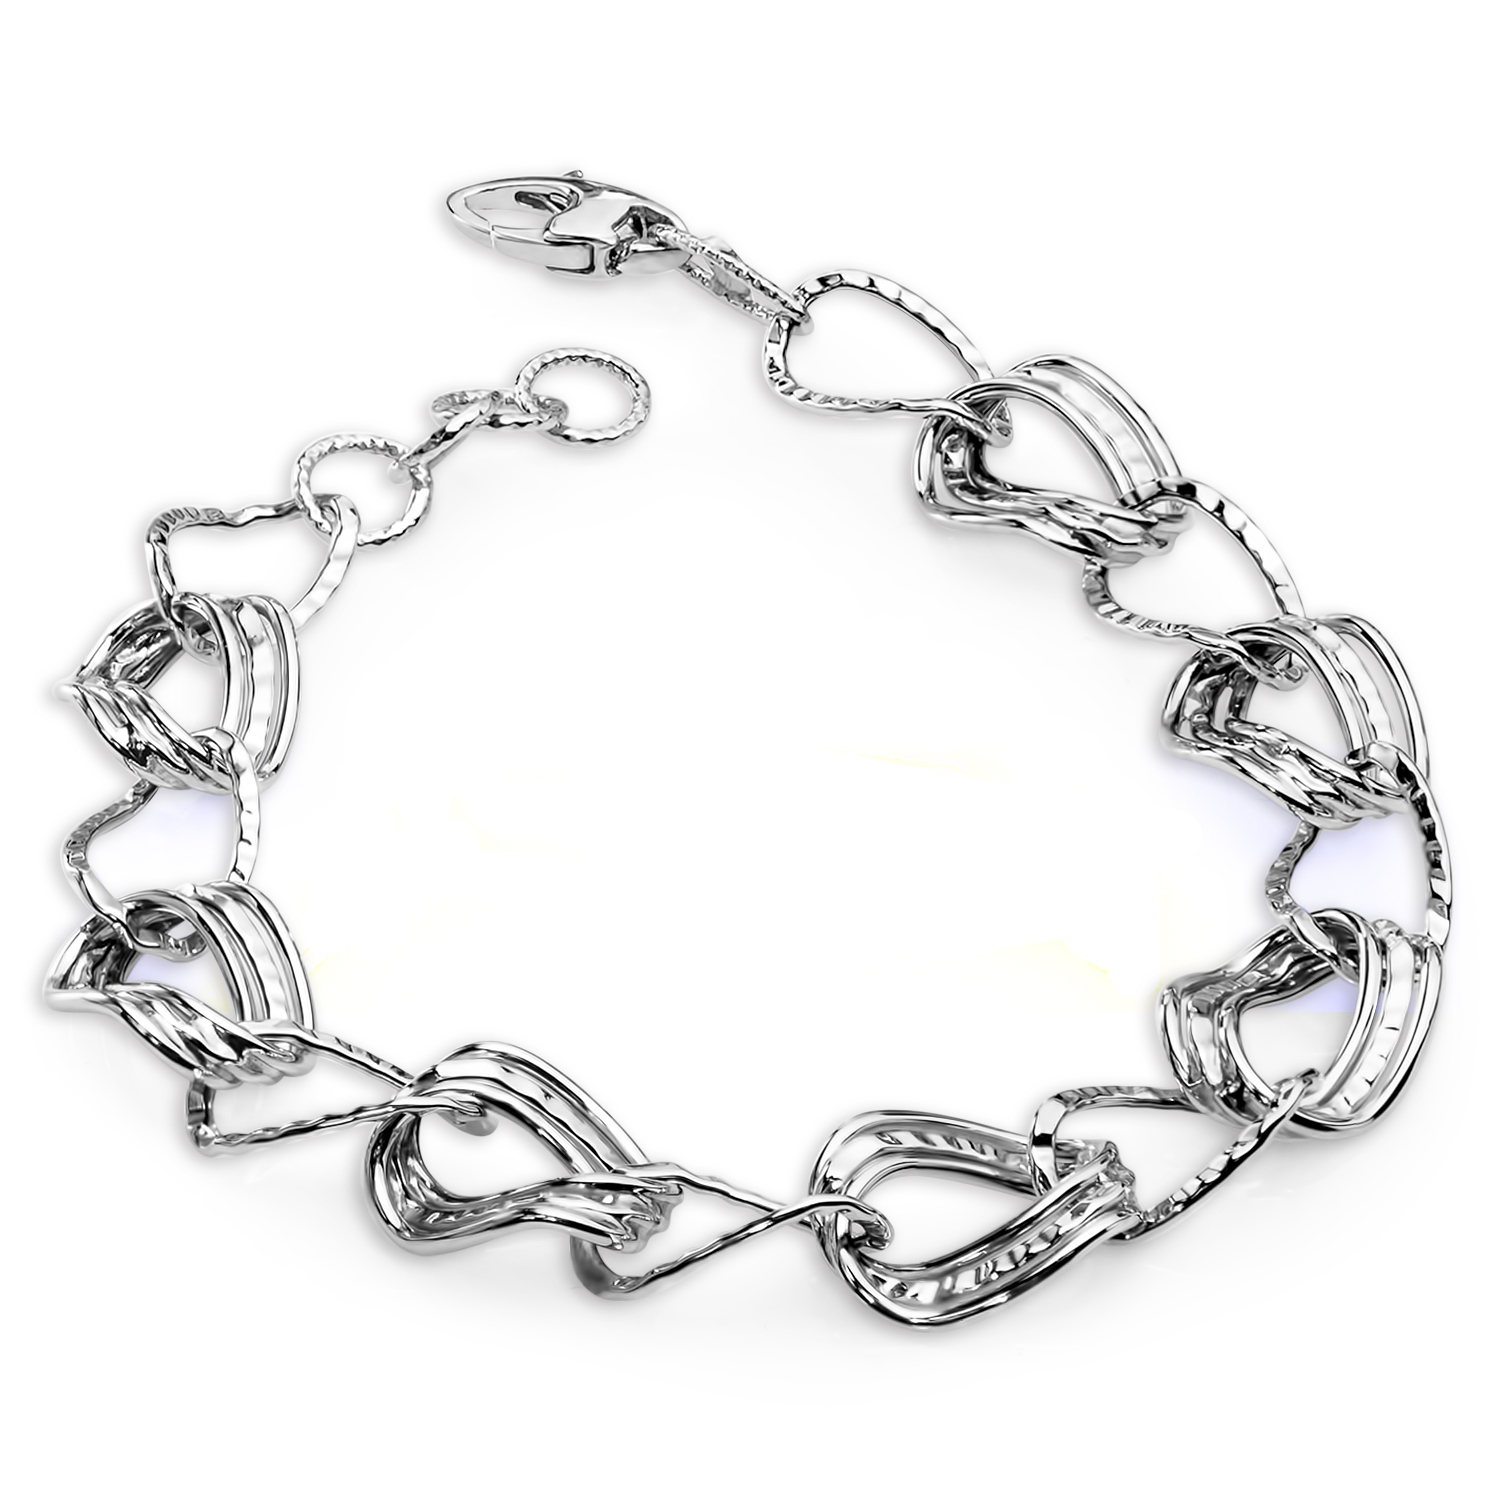 14k White Gold Polished and Textured Bracelet